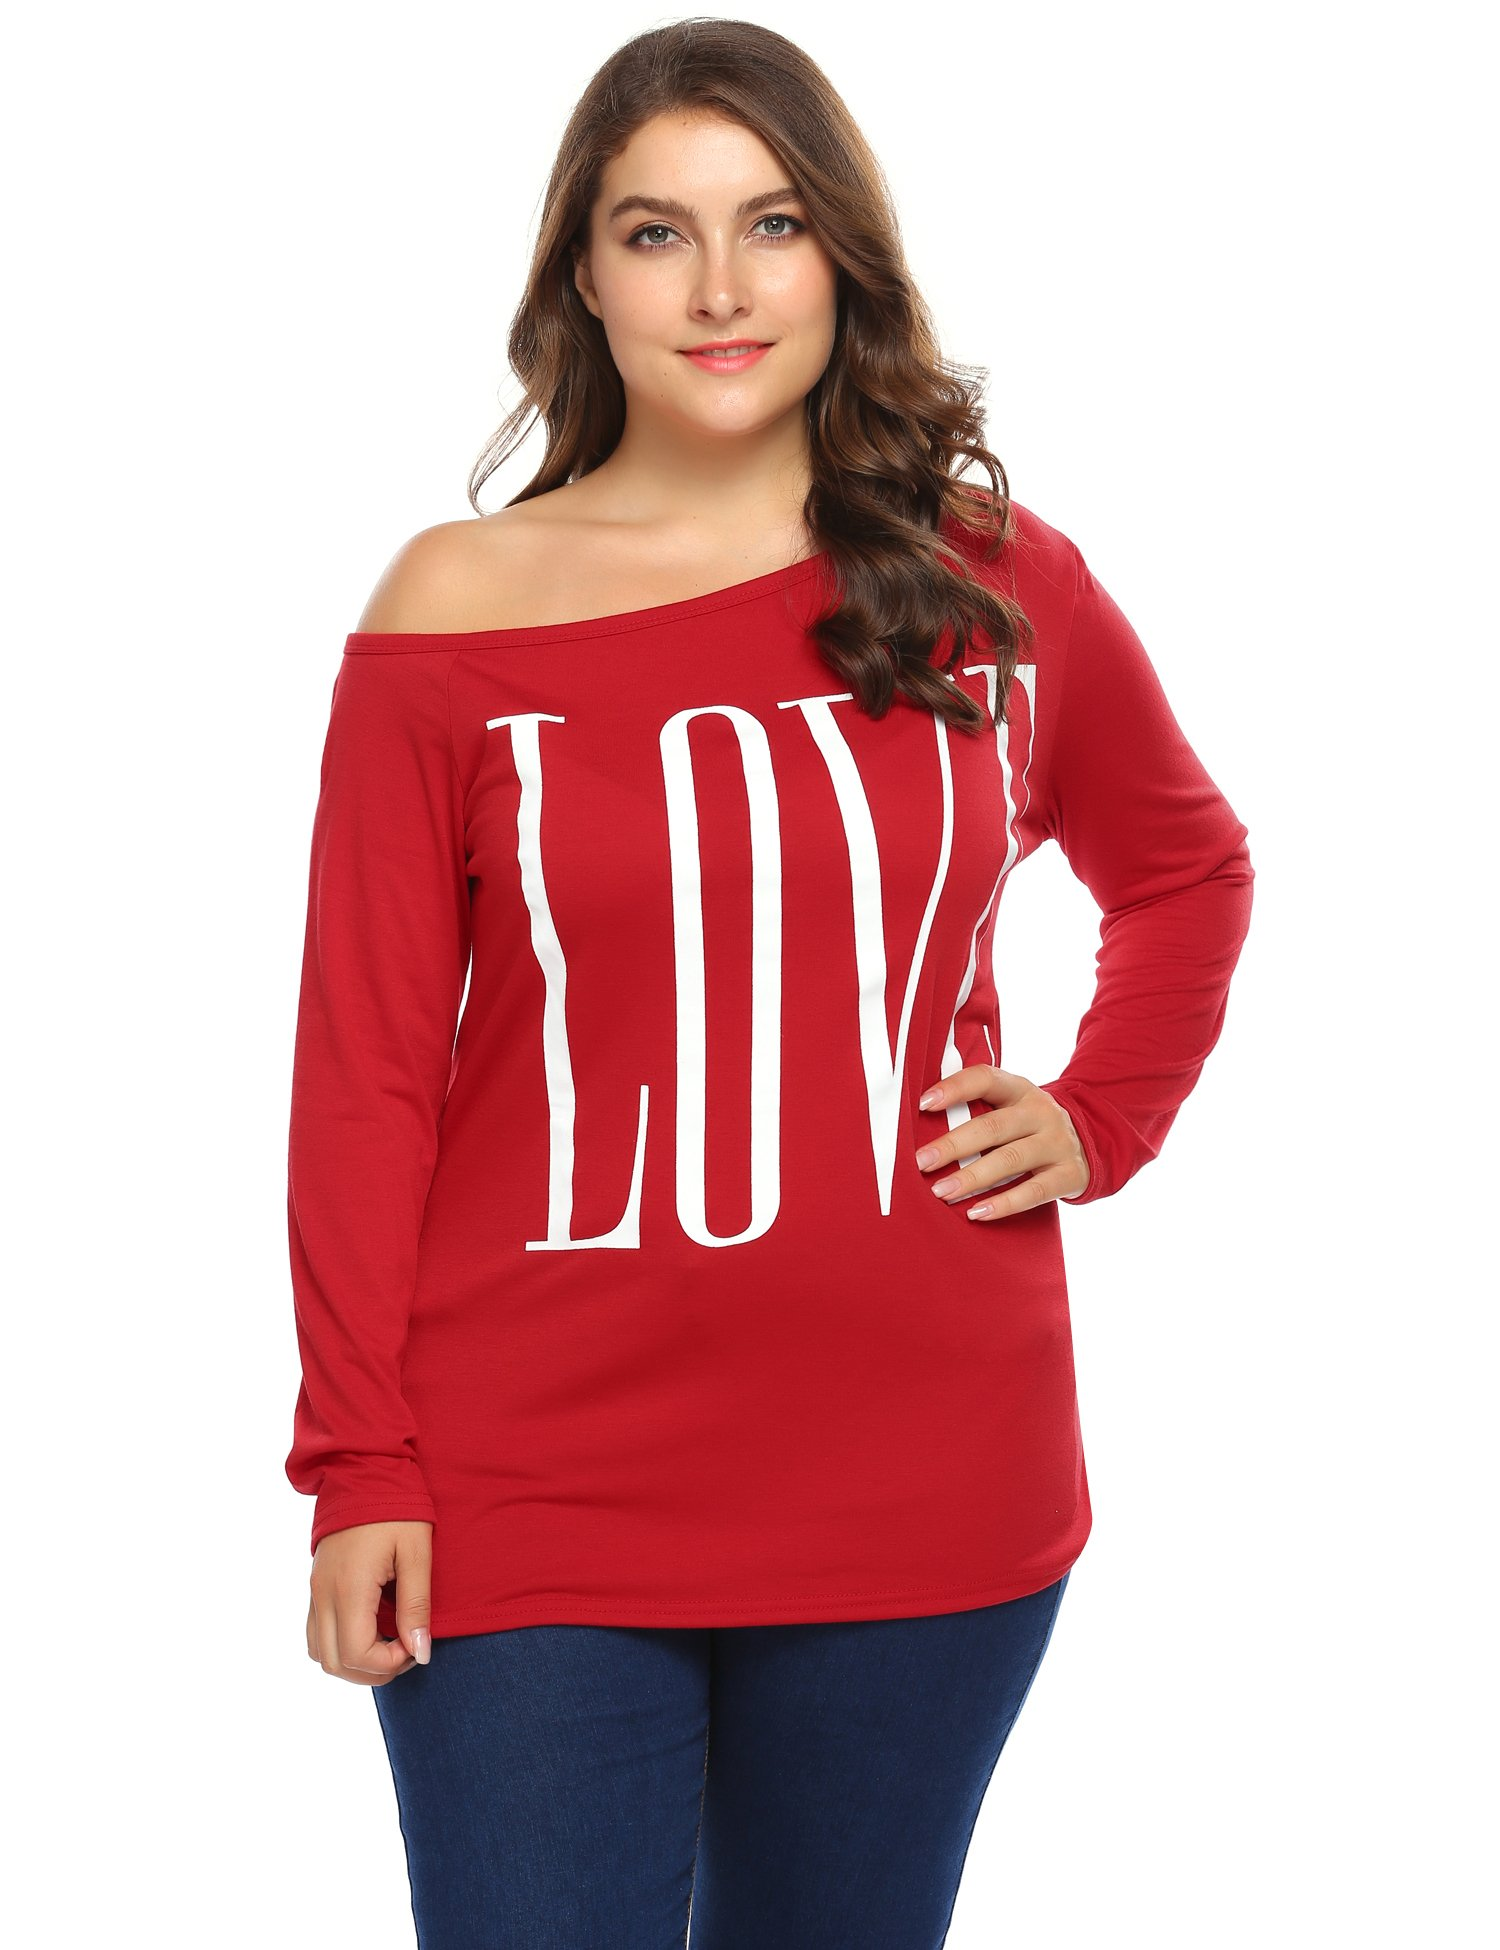 Involand Women One Shoulder Long Sleeve Letter Print Casual T-Shirt Tops Plus Size